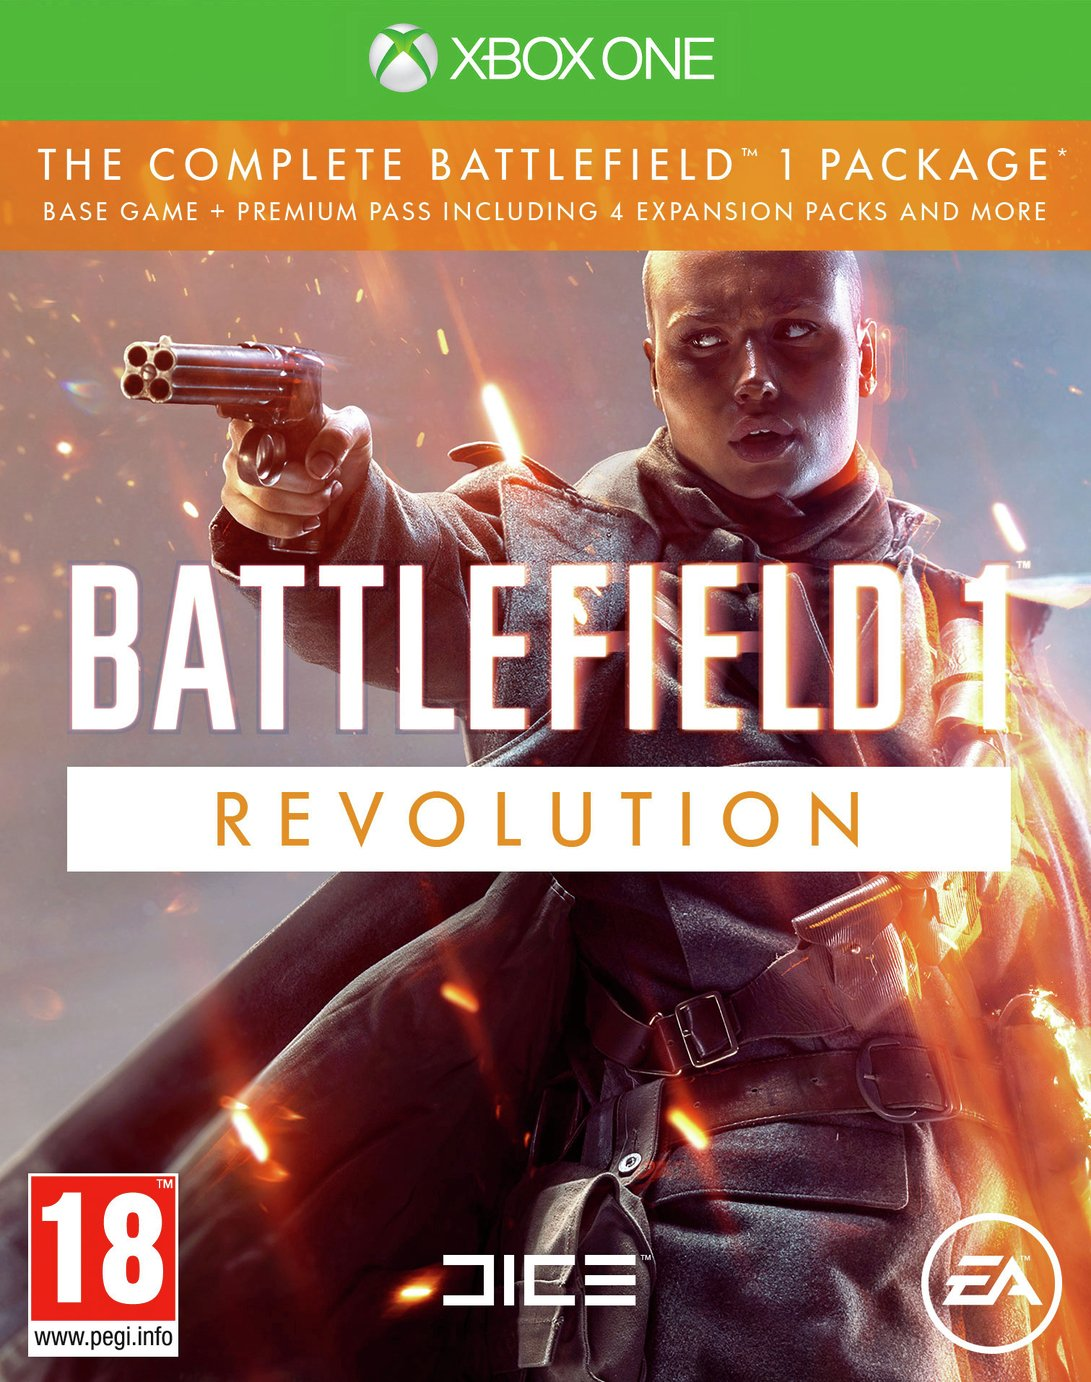 Image of Battlefield 1 Revolution Xbox One Game